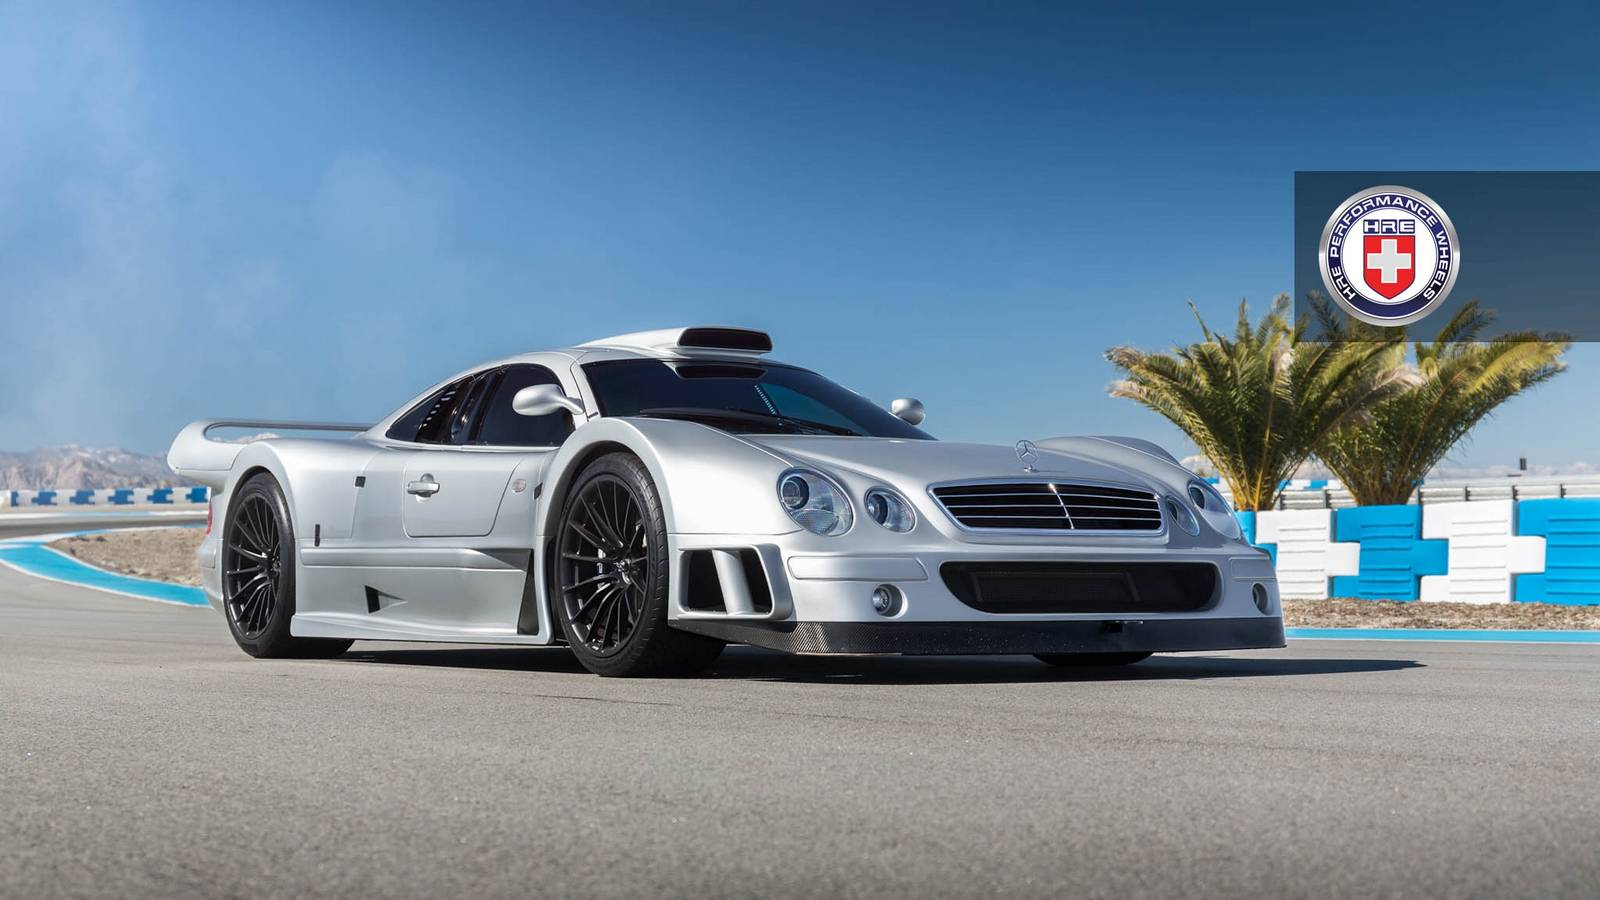 Stunning mercedes benz clk gtr with satin black hre wheels for Mercedes benz cars